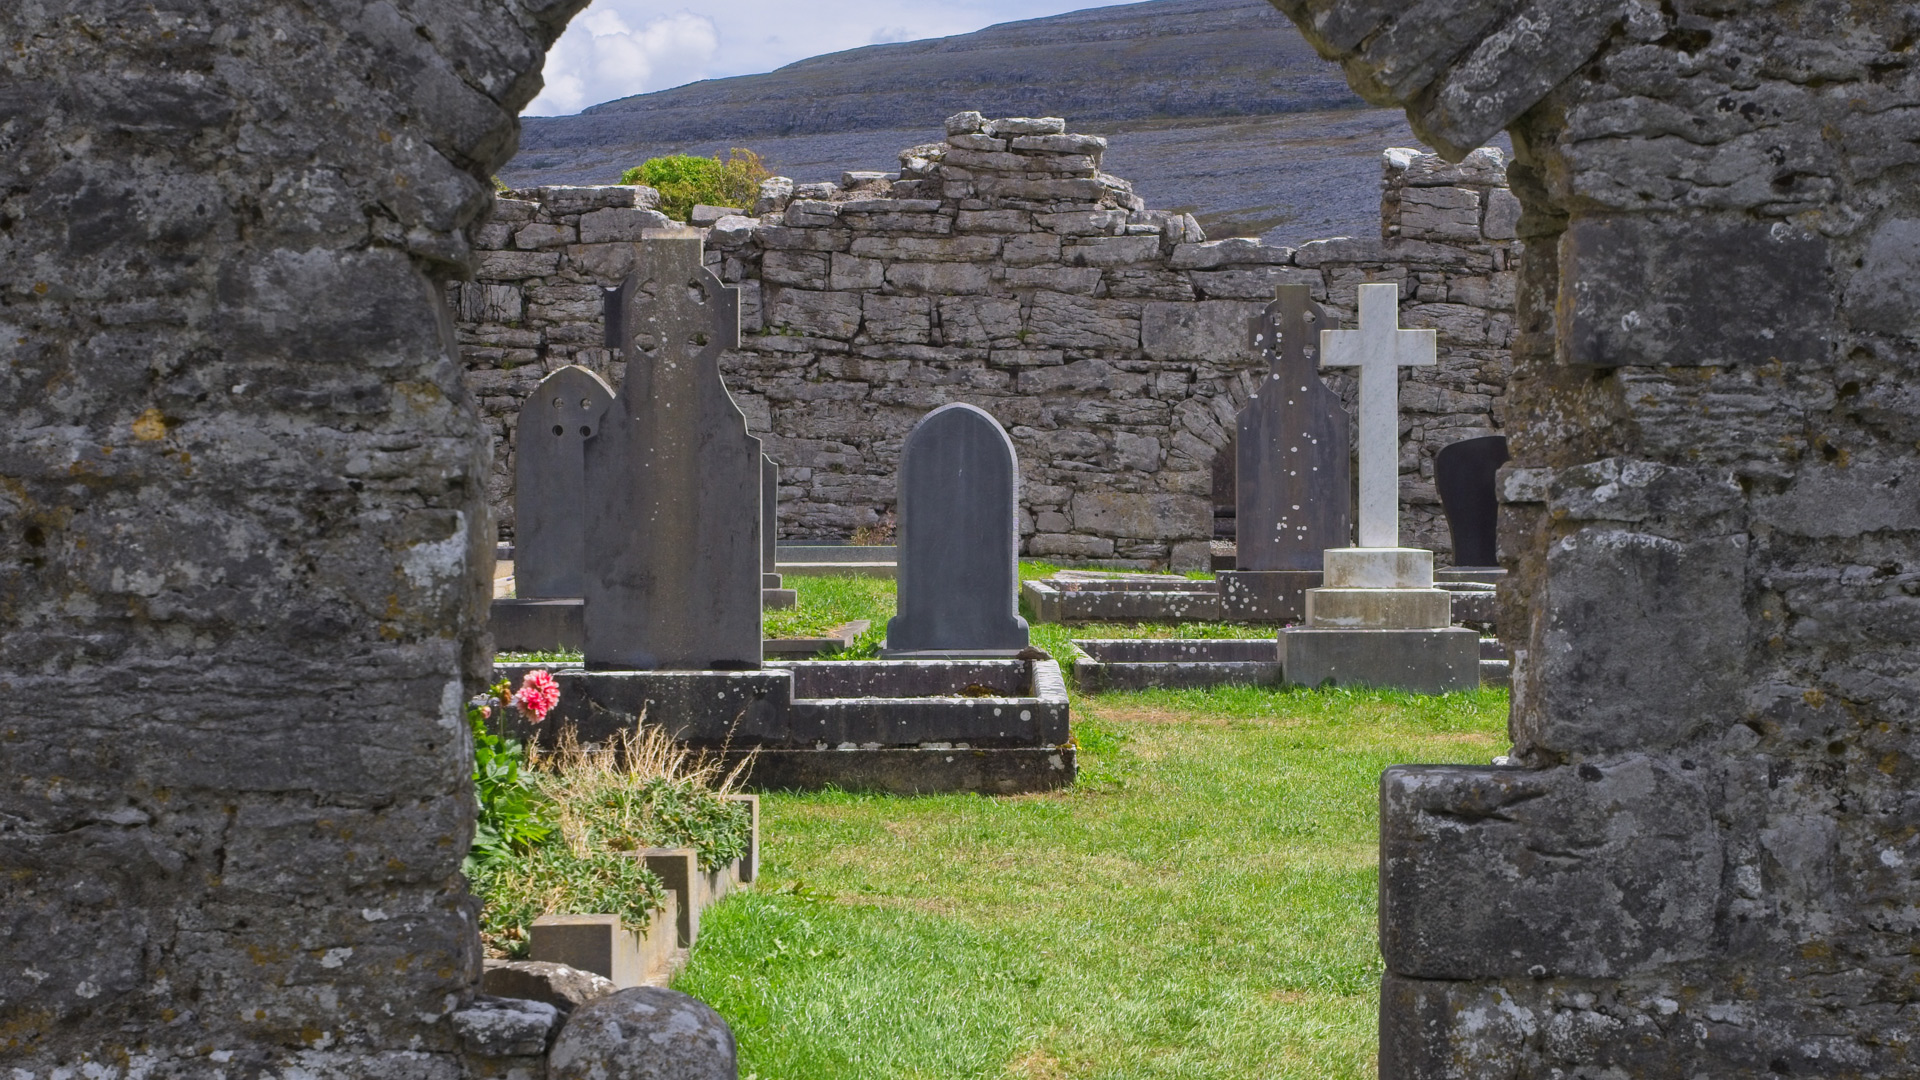 parish graveyard in County Clare